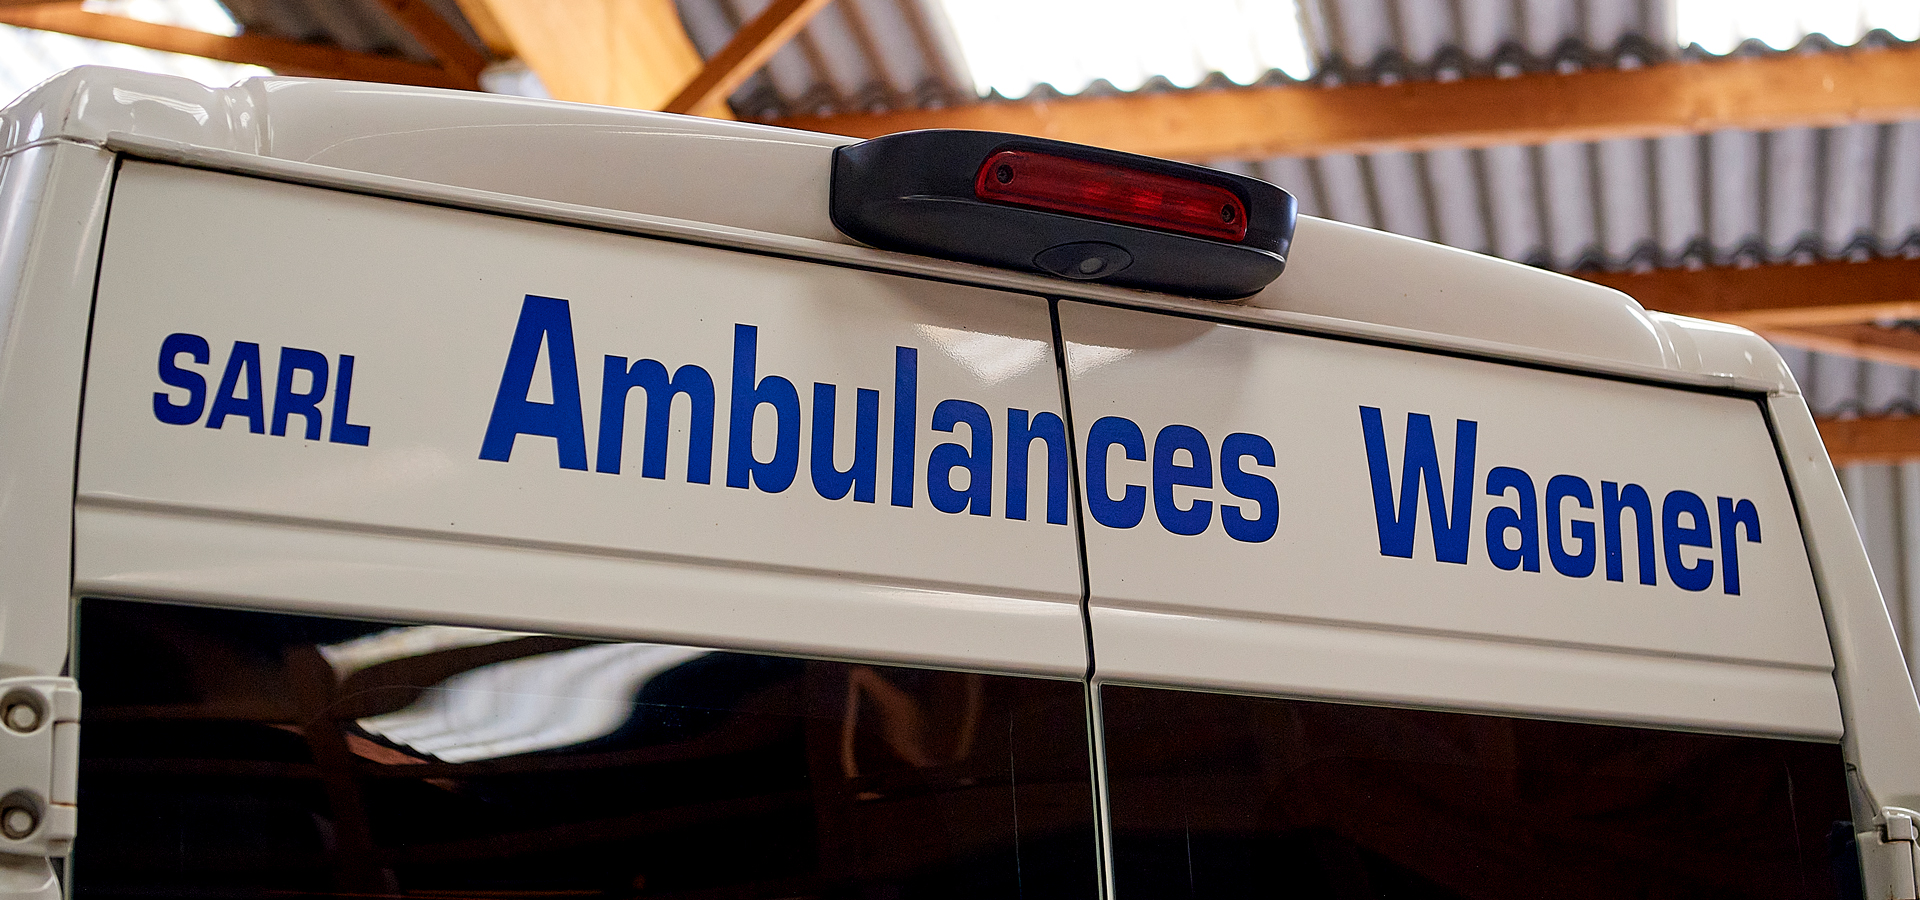 Ambulances Morin-Wagner - 1